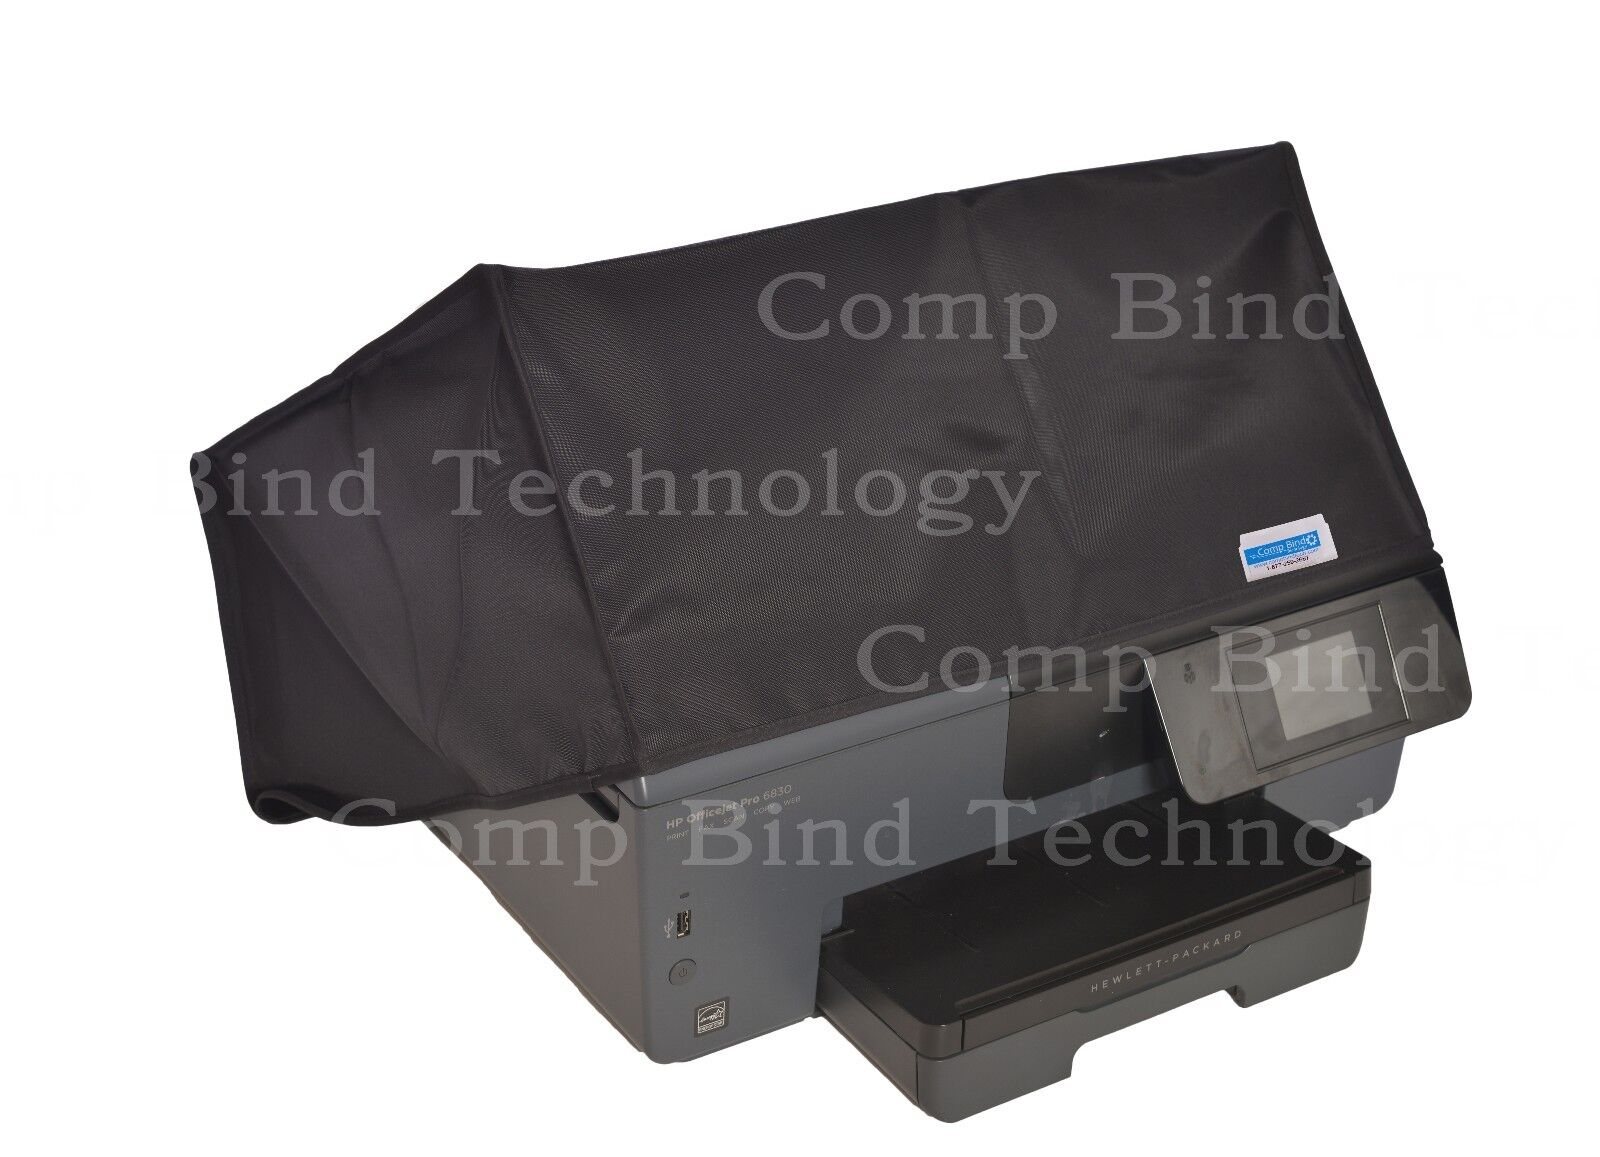 Hp Officejet 5740 Printer Black Nylon Dust Cover 185w X 167d Wire Harness Connector Oem Hp4550 167